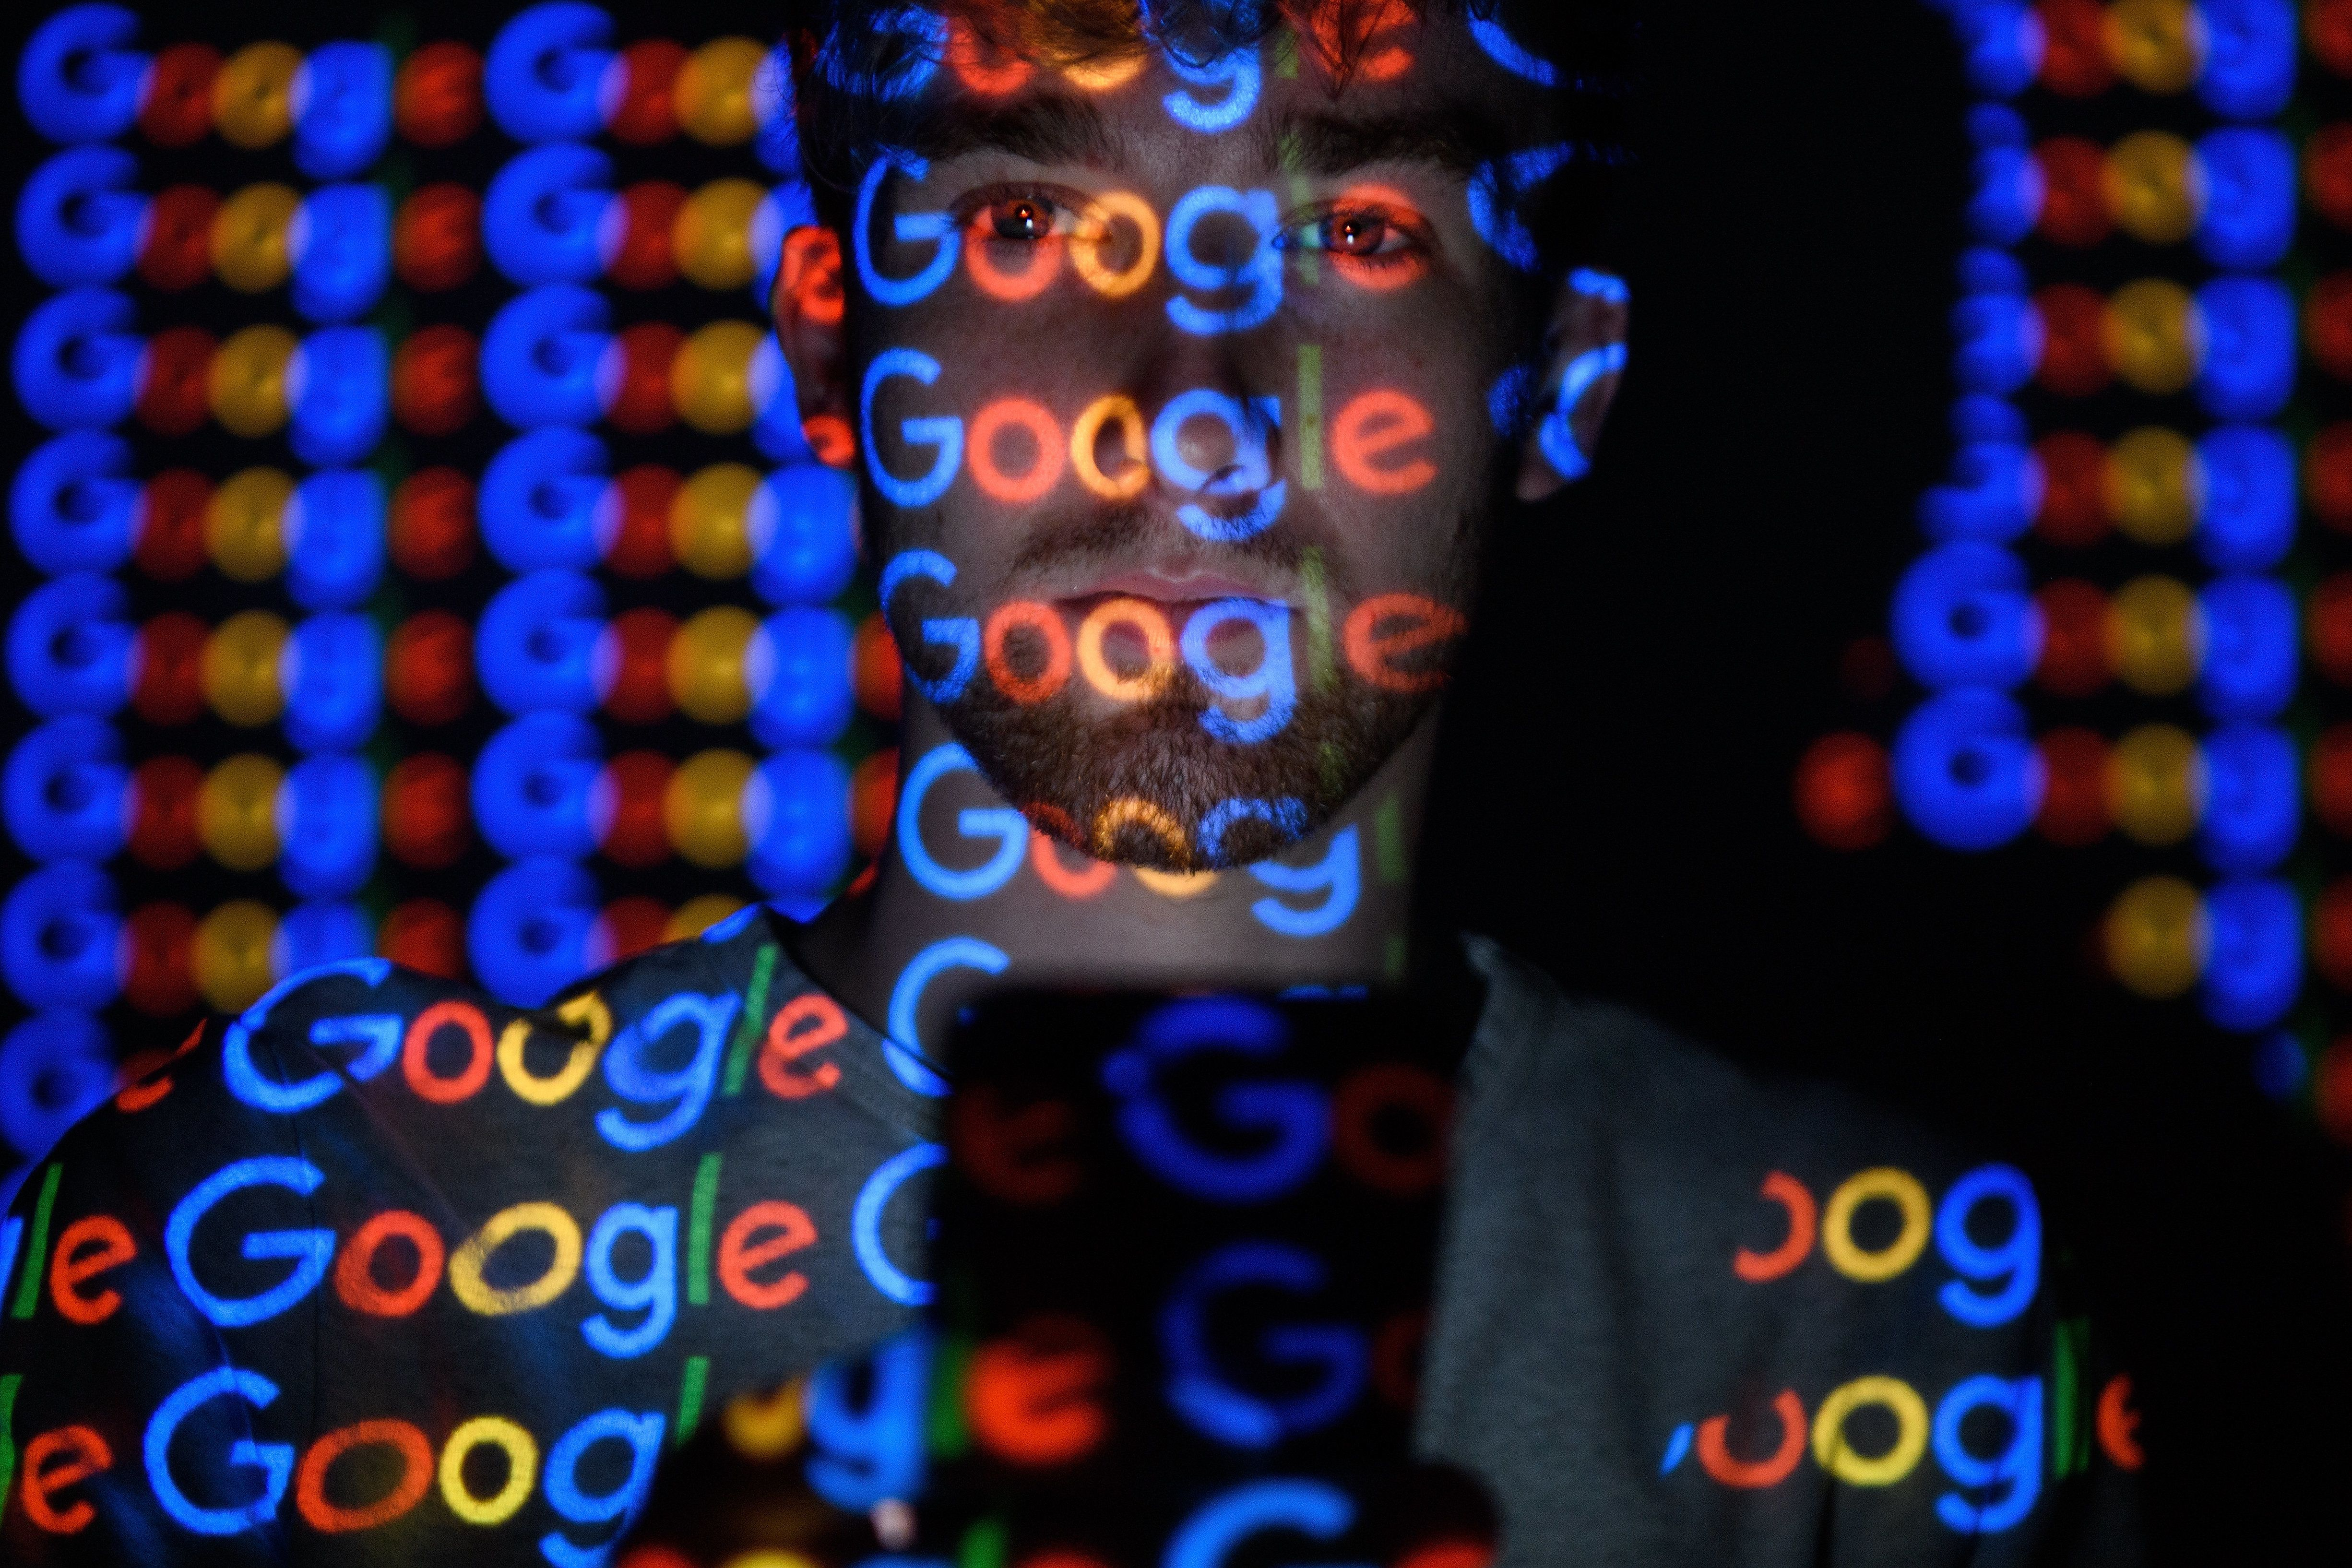 LONDON, ENGLAND - AUGUST 09:  In this photo illustration,  The Google logo is projected onto a man on August 09, 2017 in London, England. Founded in 1995 by Sergey Brin and Larry Page, Google now makes hundreds of products used by billions of people across the globe, from YouTube and Android to Smartbox and Google Search.  (Photo by Leon Neal/Getty Images)